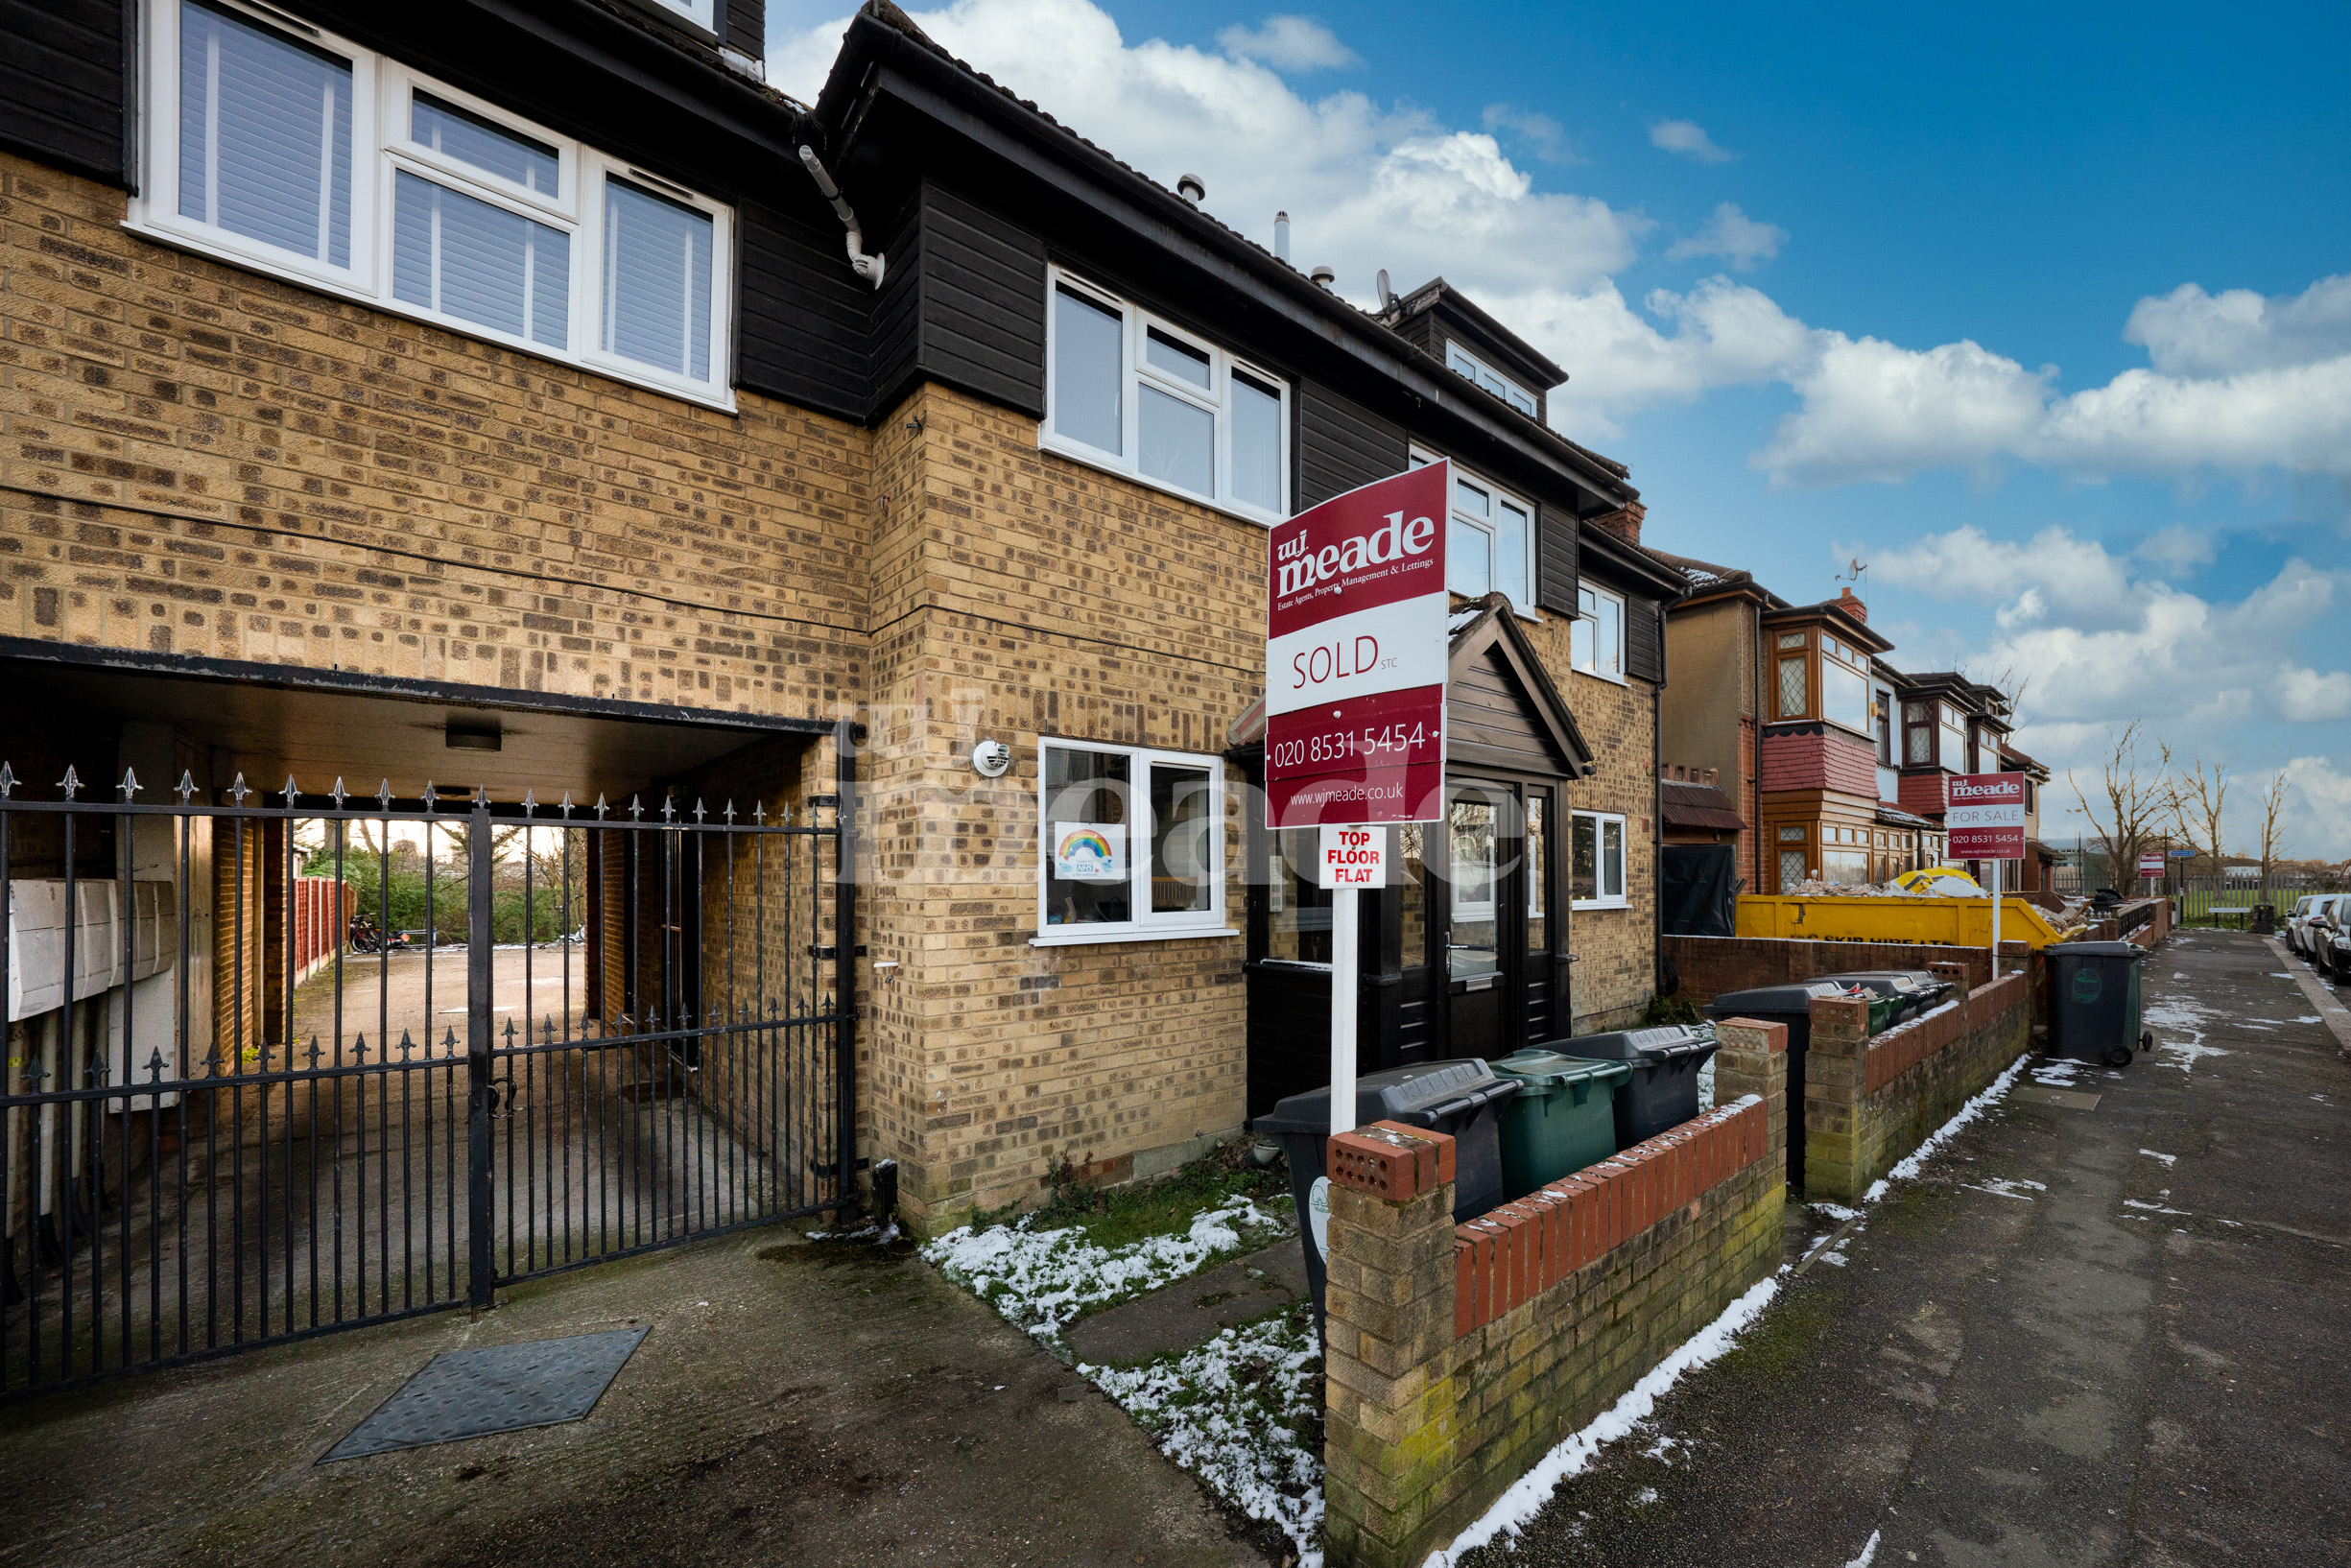 customer_1/branch_3/client_44895/sale_property/2 Roebuck Court_25_1613127560.jpeg